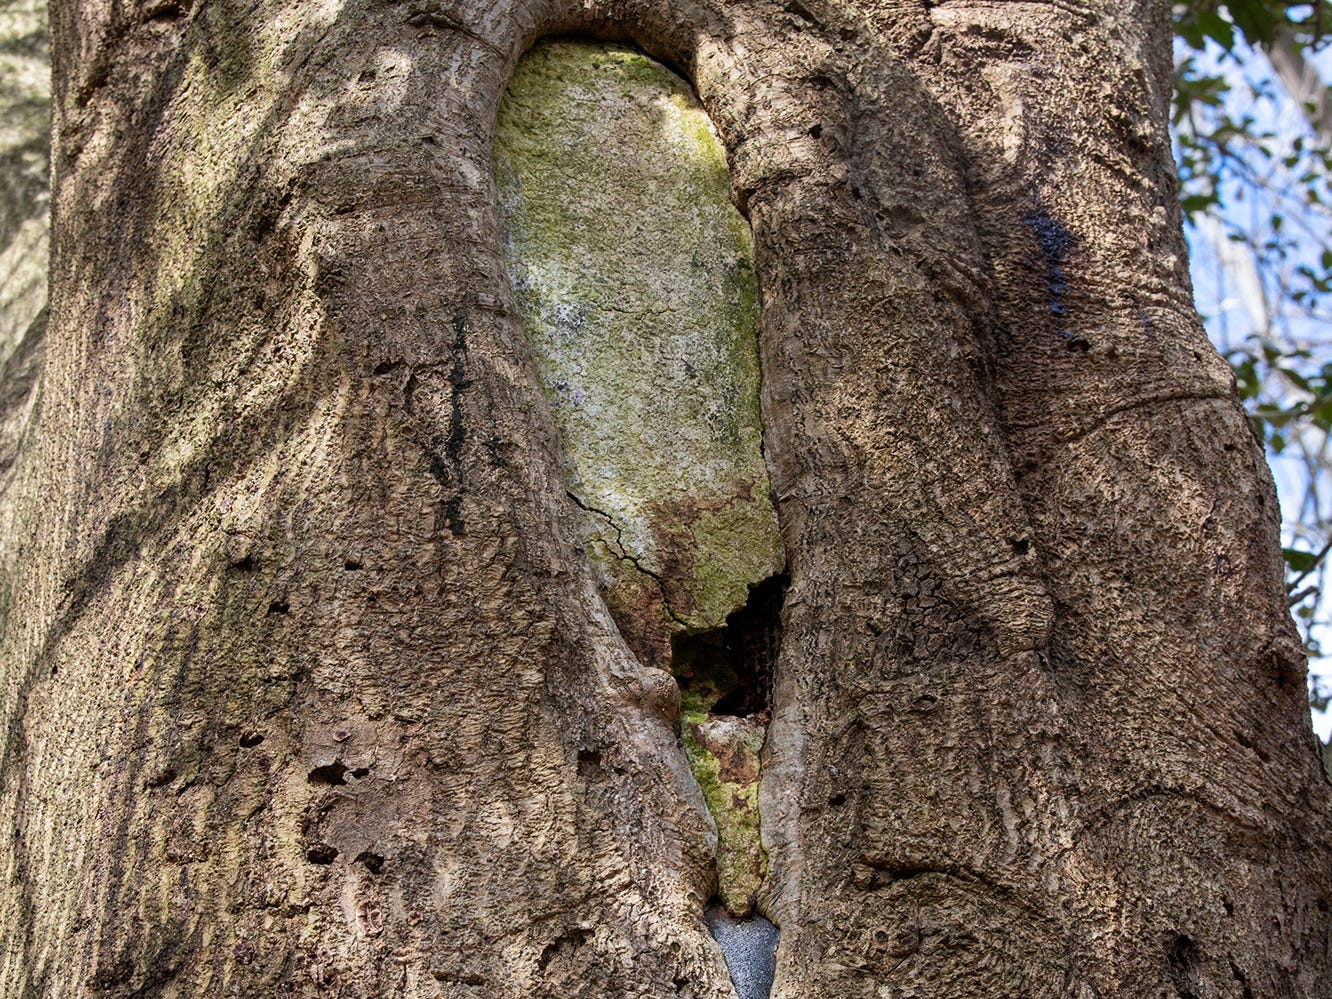 At some point, decades ago, the American holly tree was filled with cement to deal with its hollowing trunk. Certified arborist Scott Wade said the damage to the tree probably began when a branch peeled away. The American holly tree, believed to be 350 years old, is part of the Indian Steps Museum along the Susquehanna River in Lower Chanceford Township.